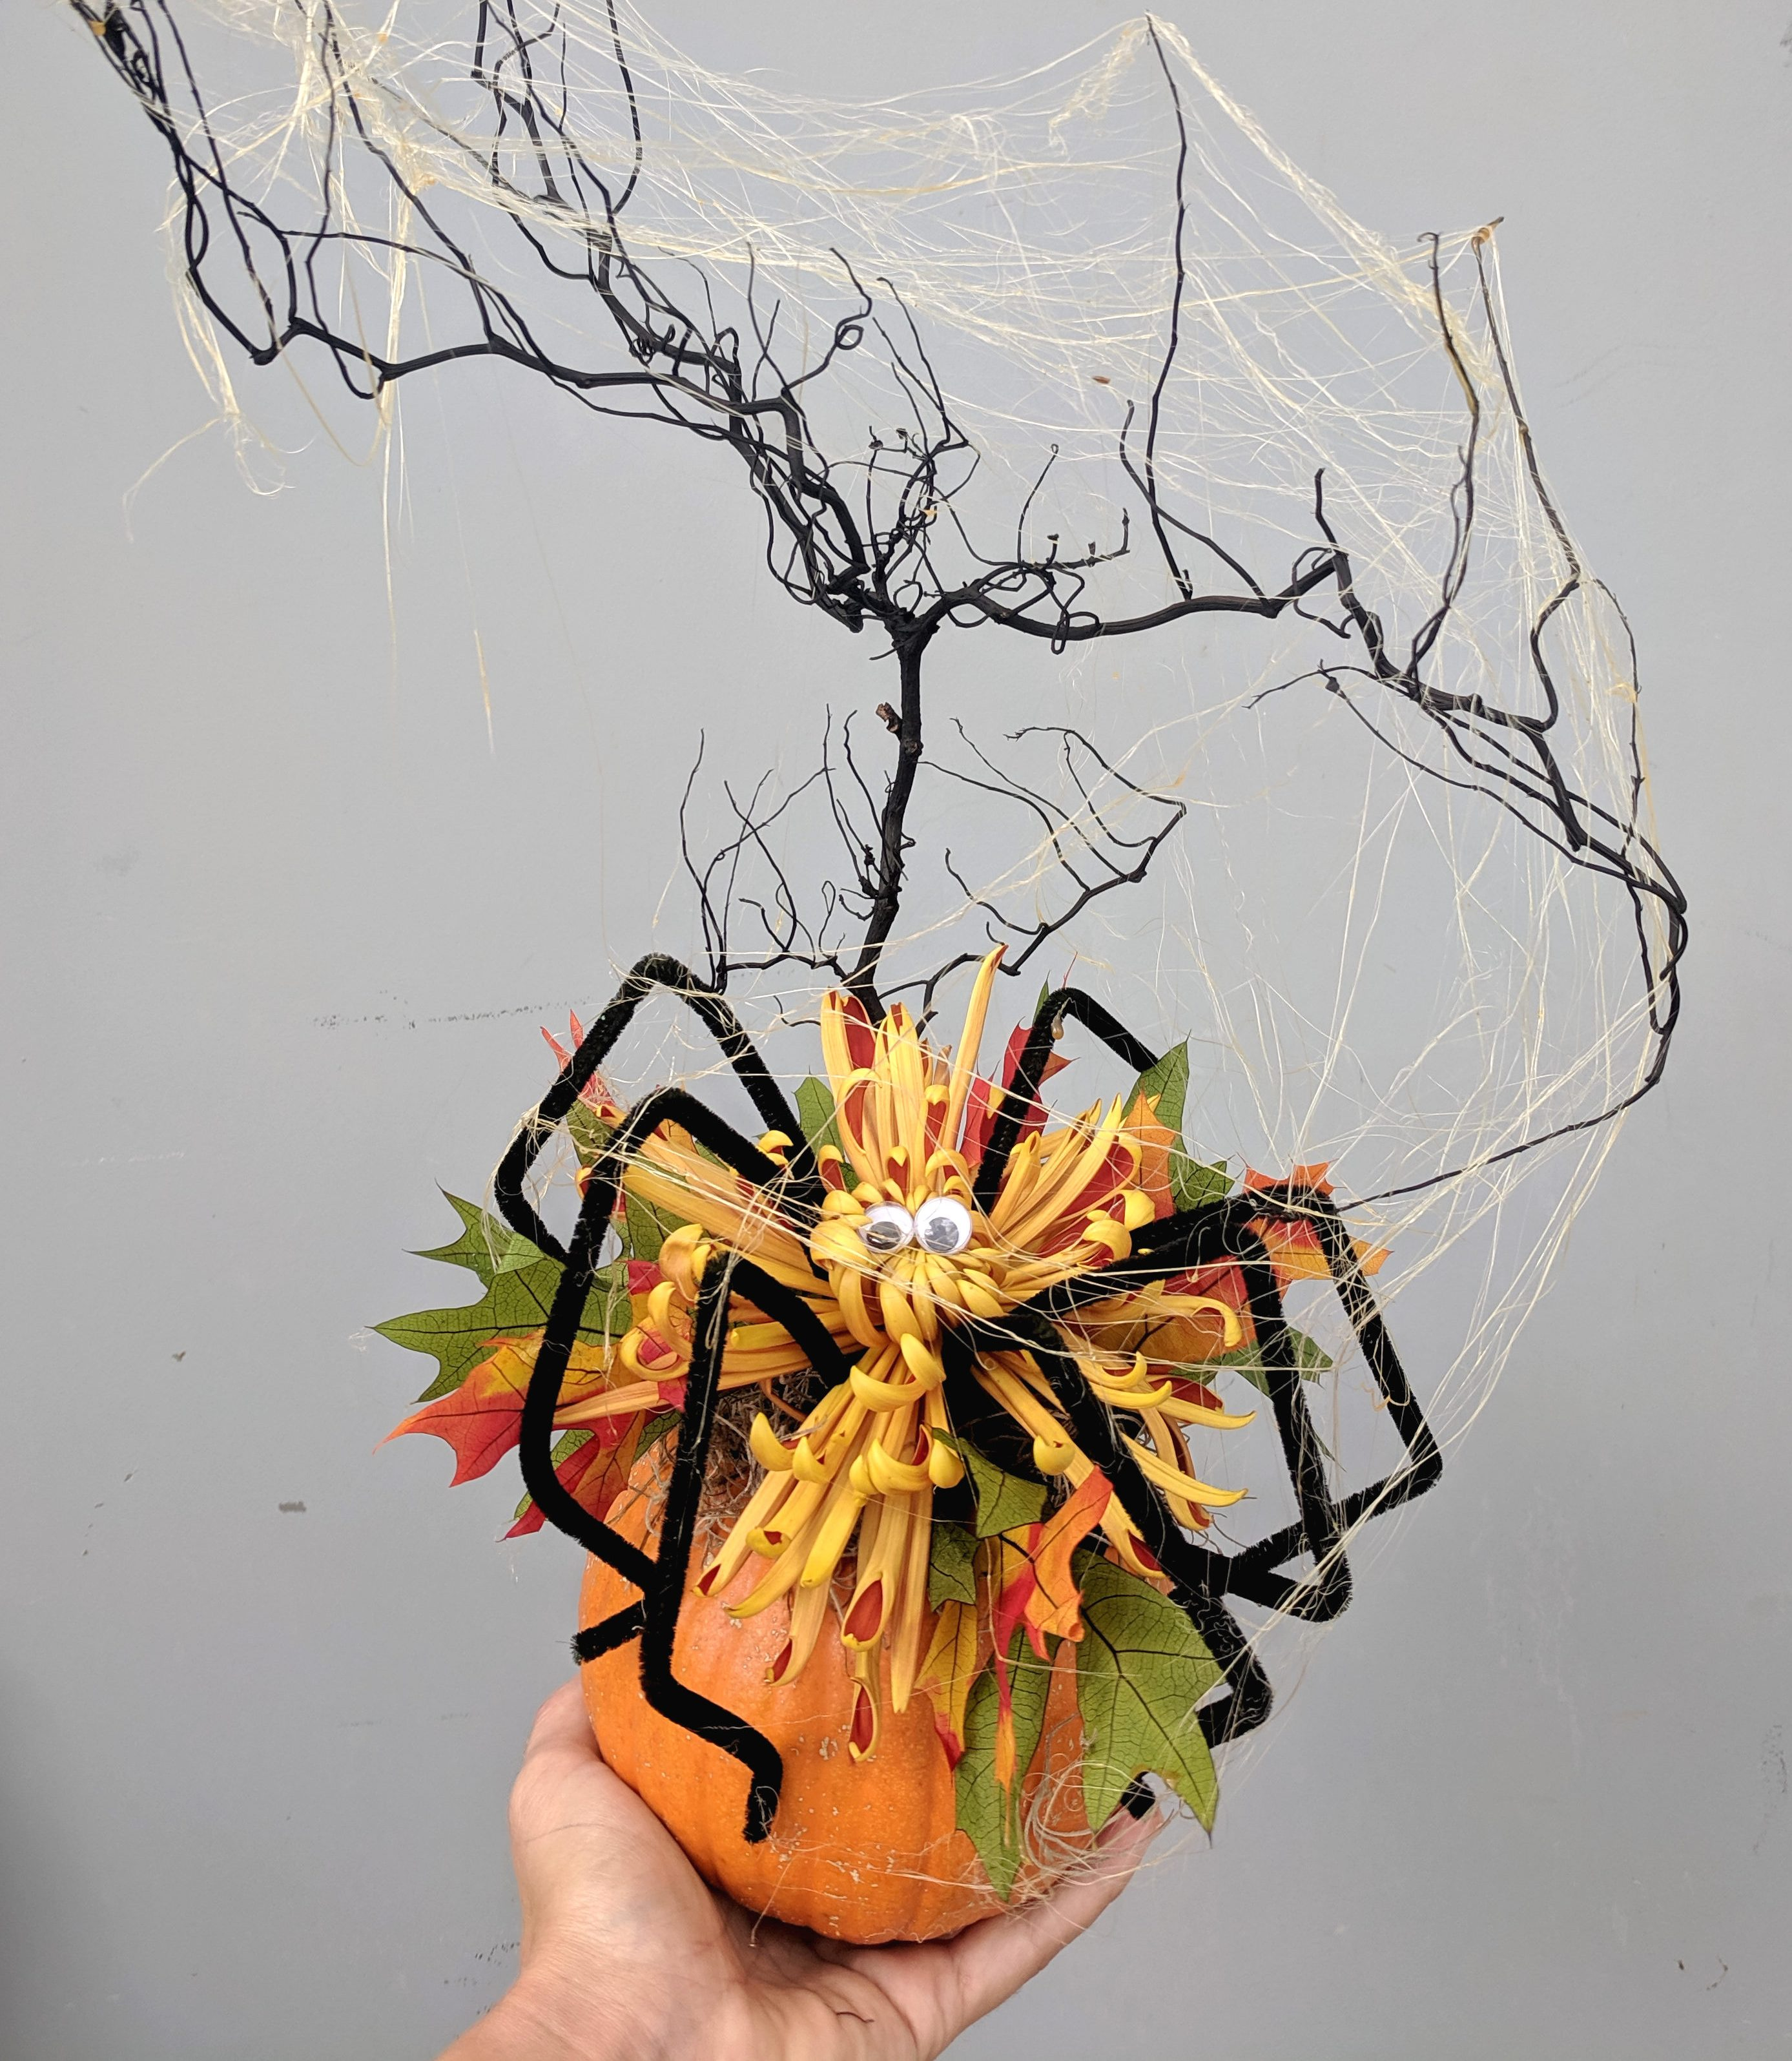 a spider made of a mum on top of a pie pumpkin with black twigs and spider web.